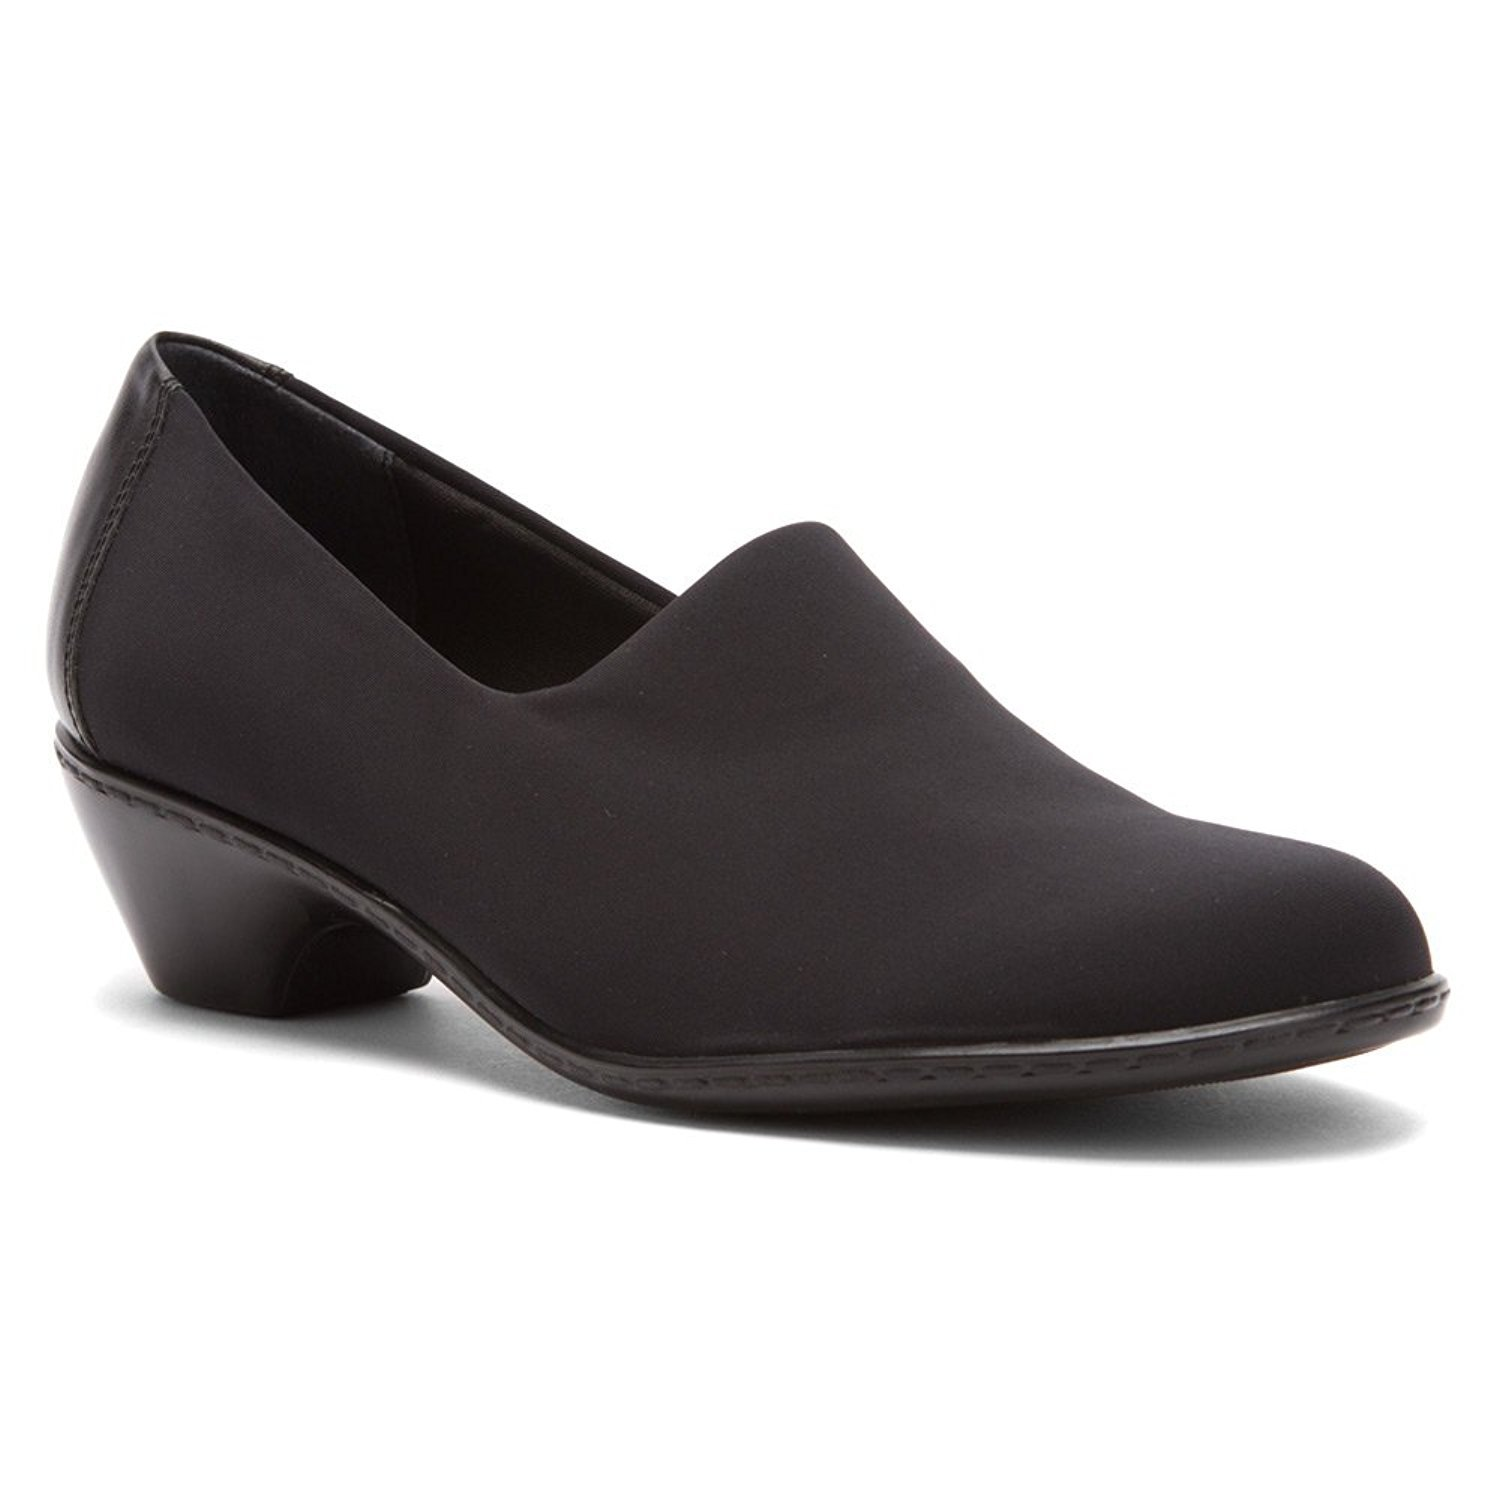 Walking Shoes With Soft Heels